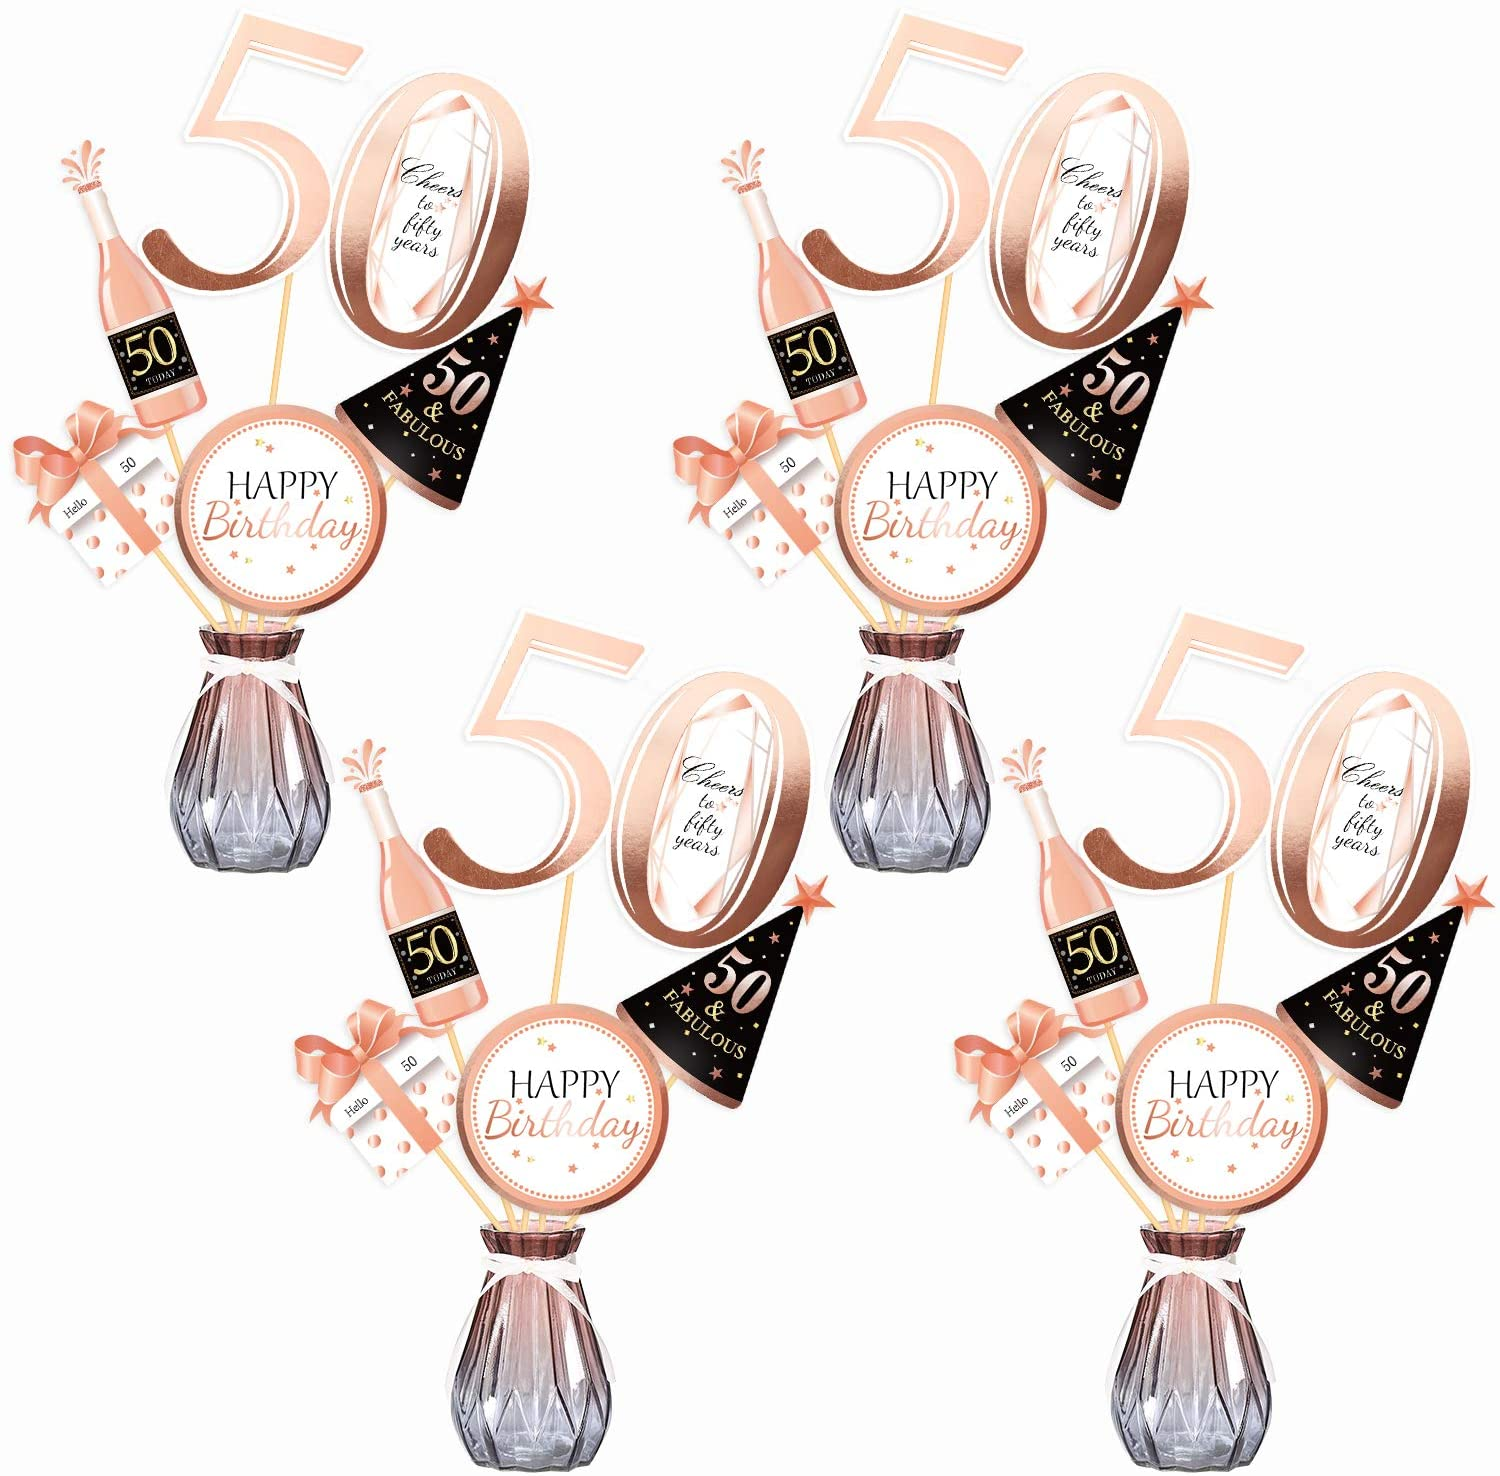 Konsait Rose Gold 50th Birthday Centerpiece Sticks-50th Birthday Table Toppers -Birthday Party Decorations Accessories- 50 Fabulous -Bday Party Cheers to fifty Years Birthday Party Favor Table Supplies